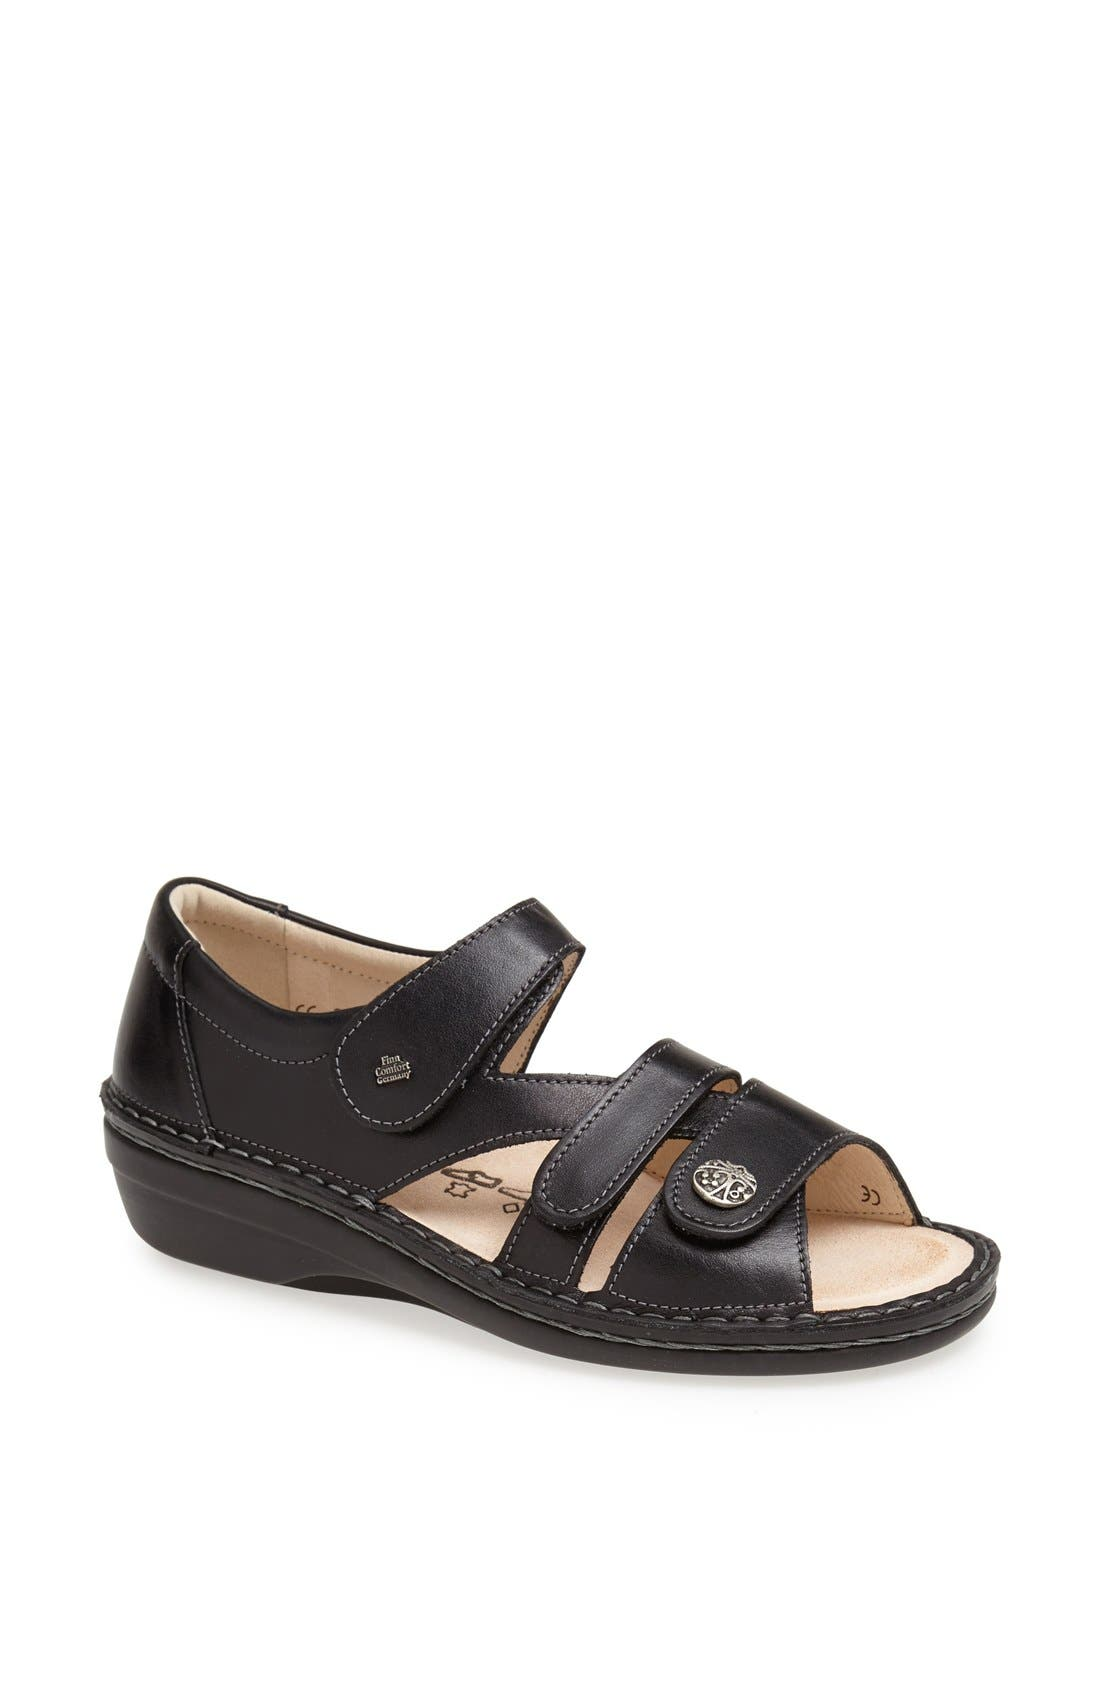 'Sintra' Sandal,                         Main,                         color, BLACK